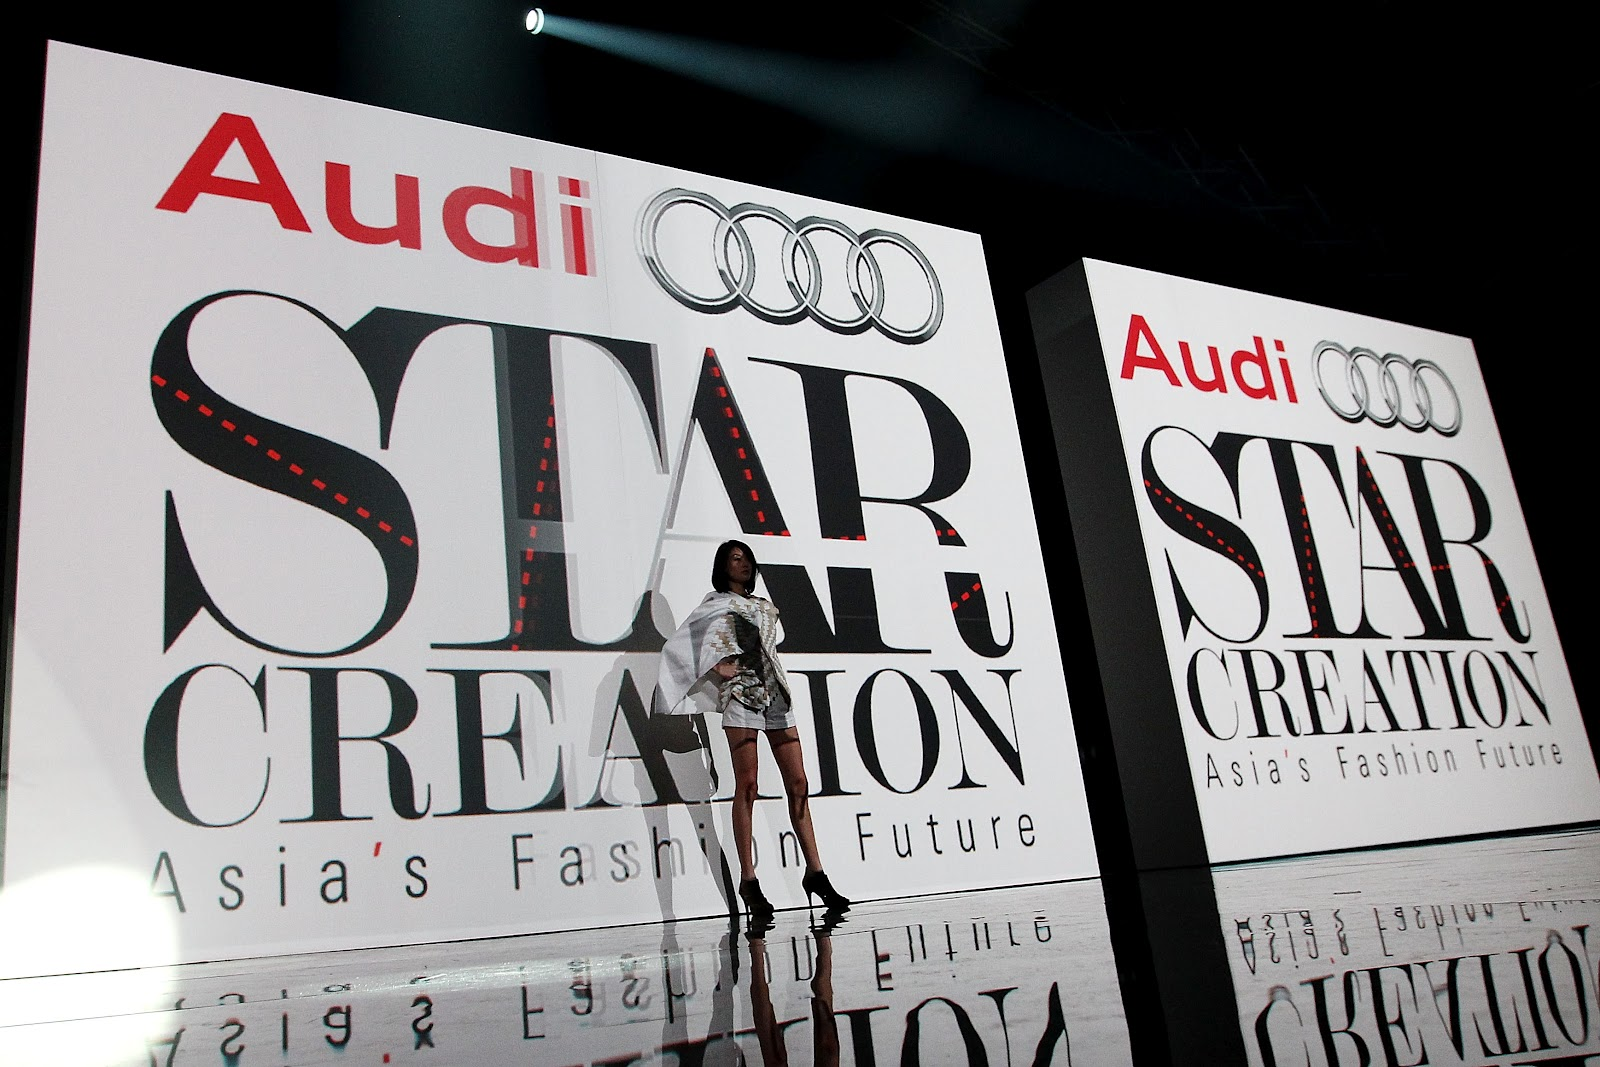 Audi Star Creation 2012 Fashion Studio